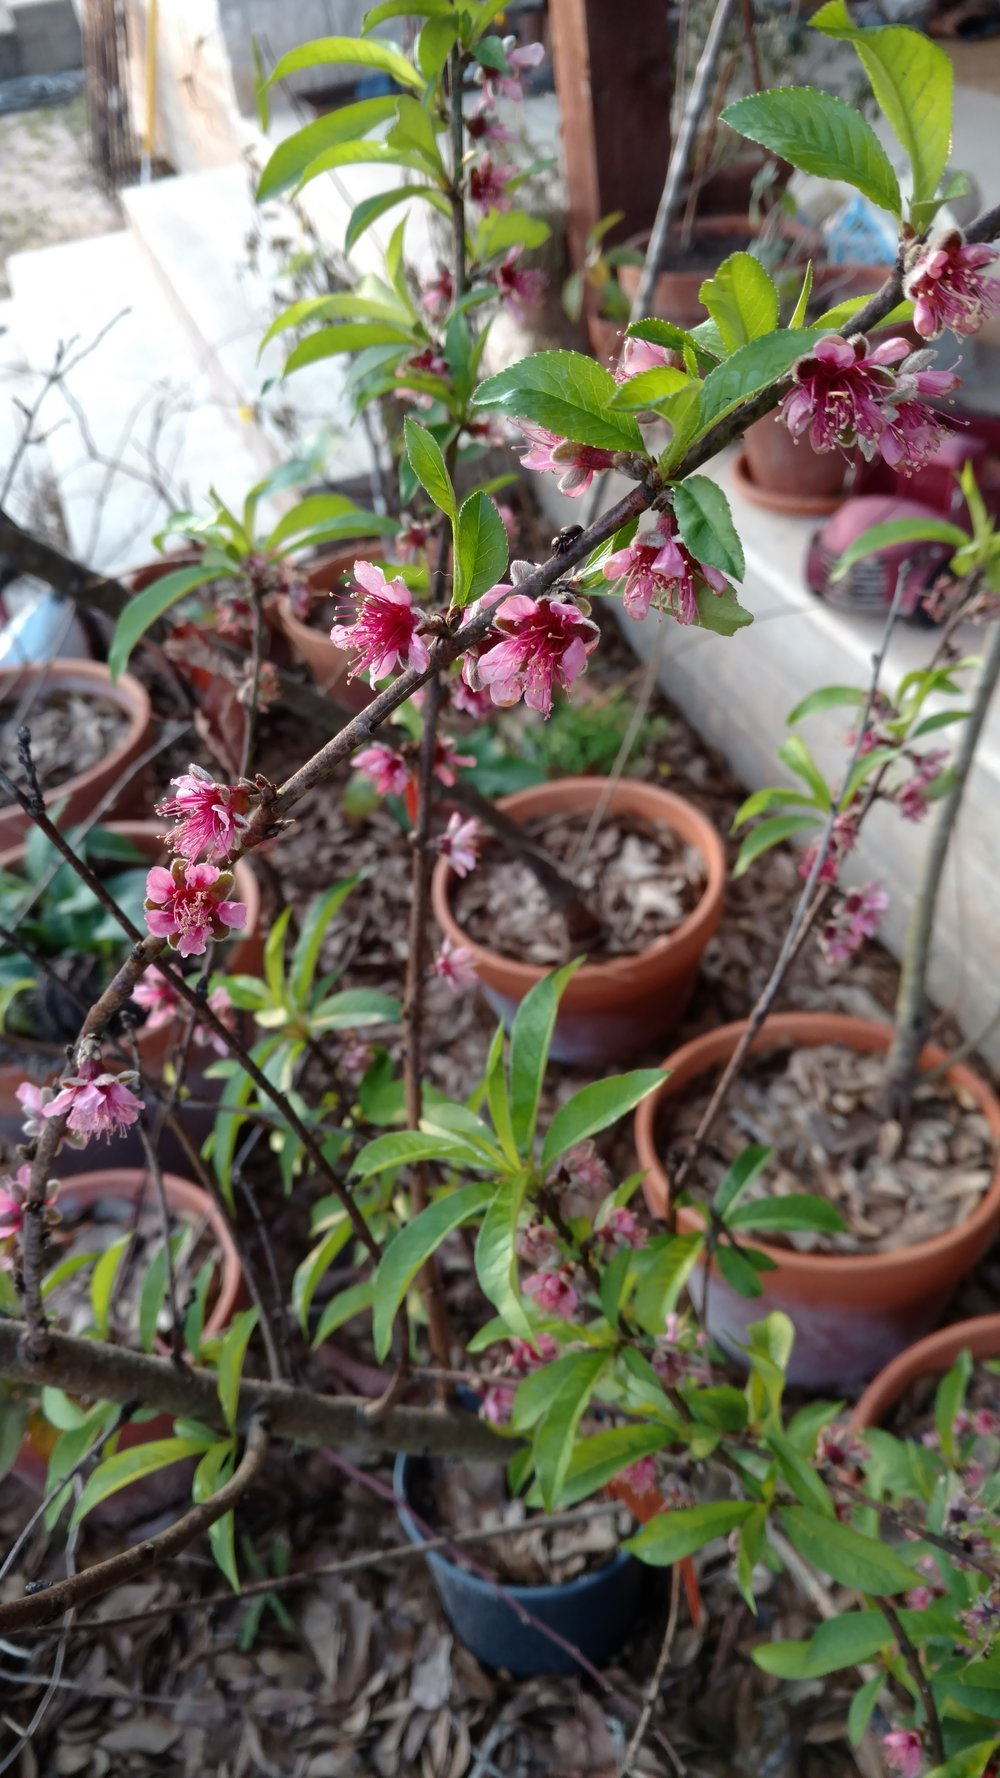 See all the pots in the background! A Redskin peach blooming.